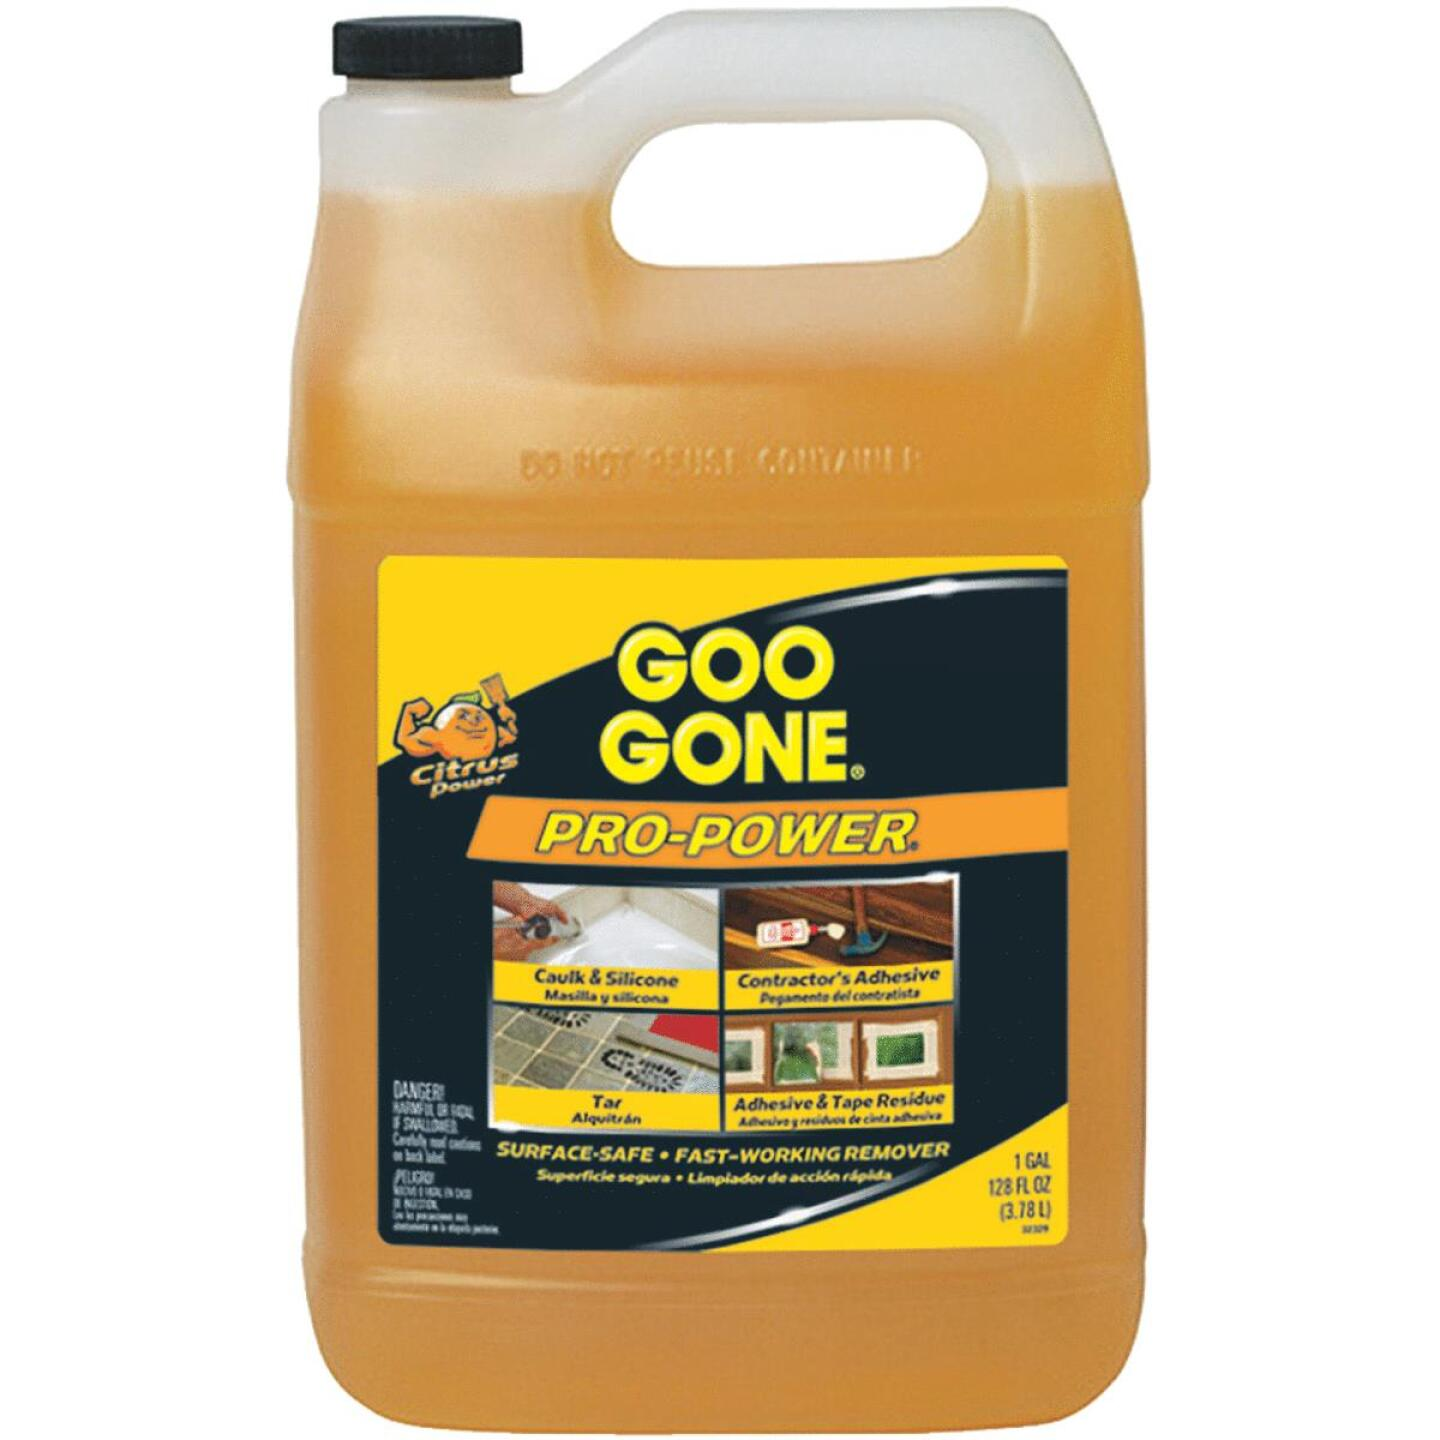 Goo Gone 1 Gal. Pro-Power Adhesive Remover Image 182